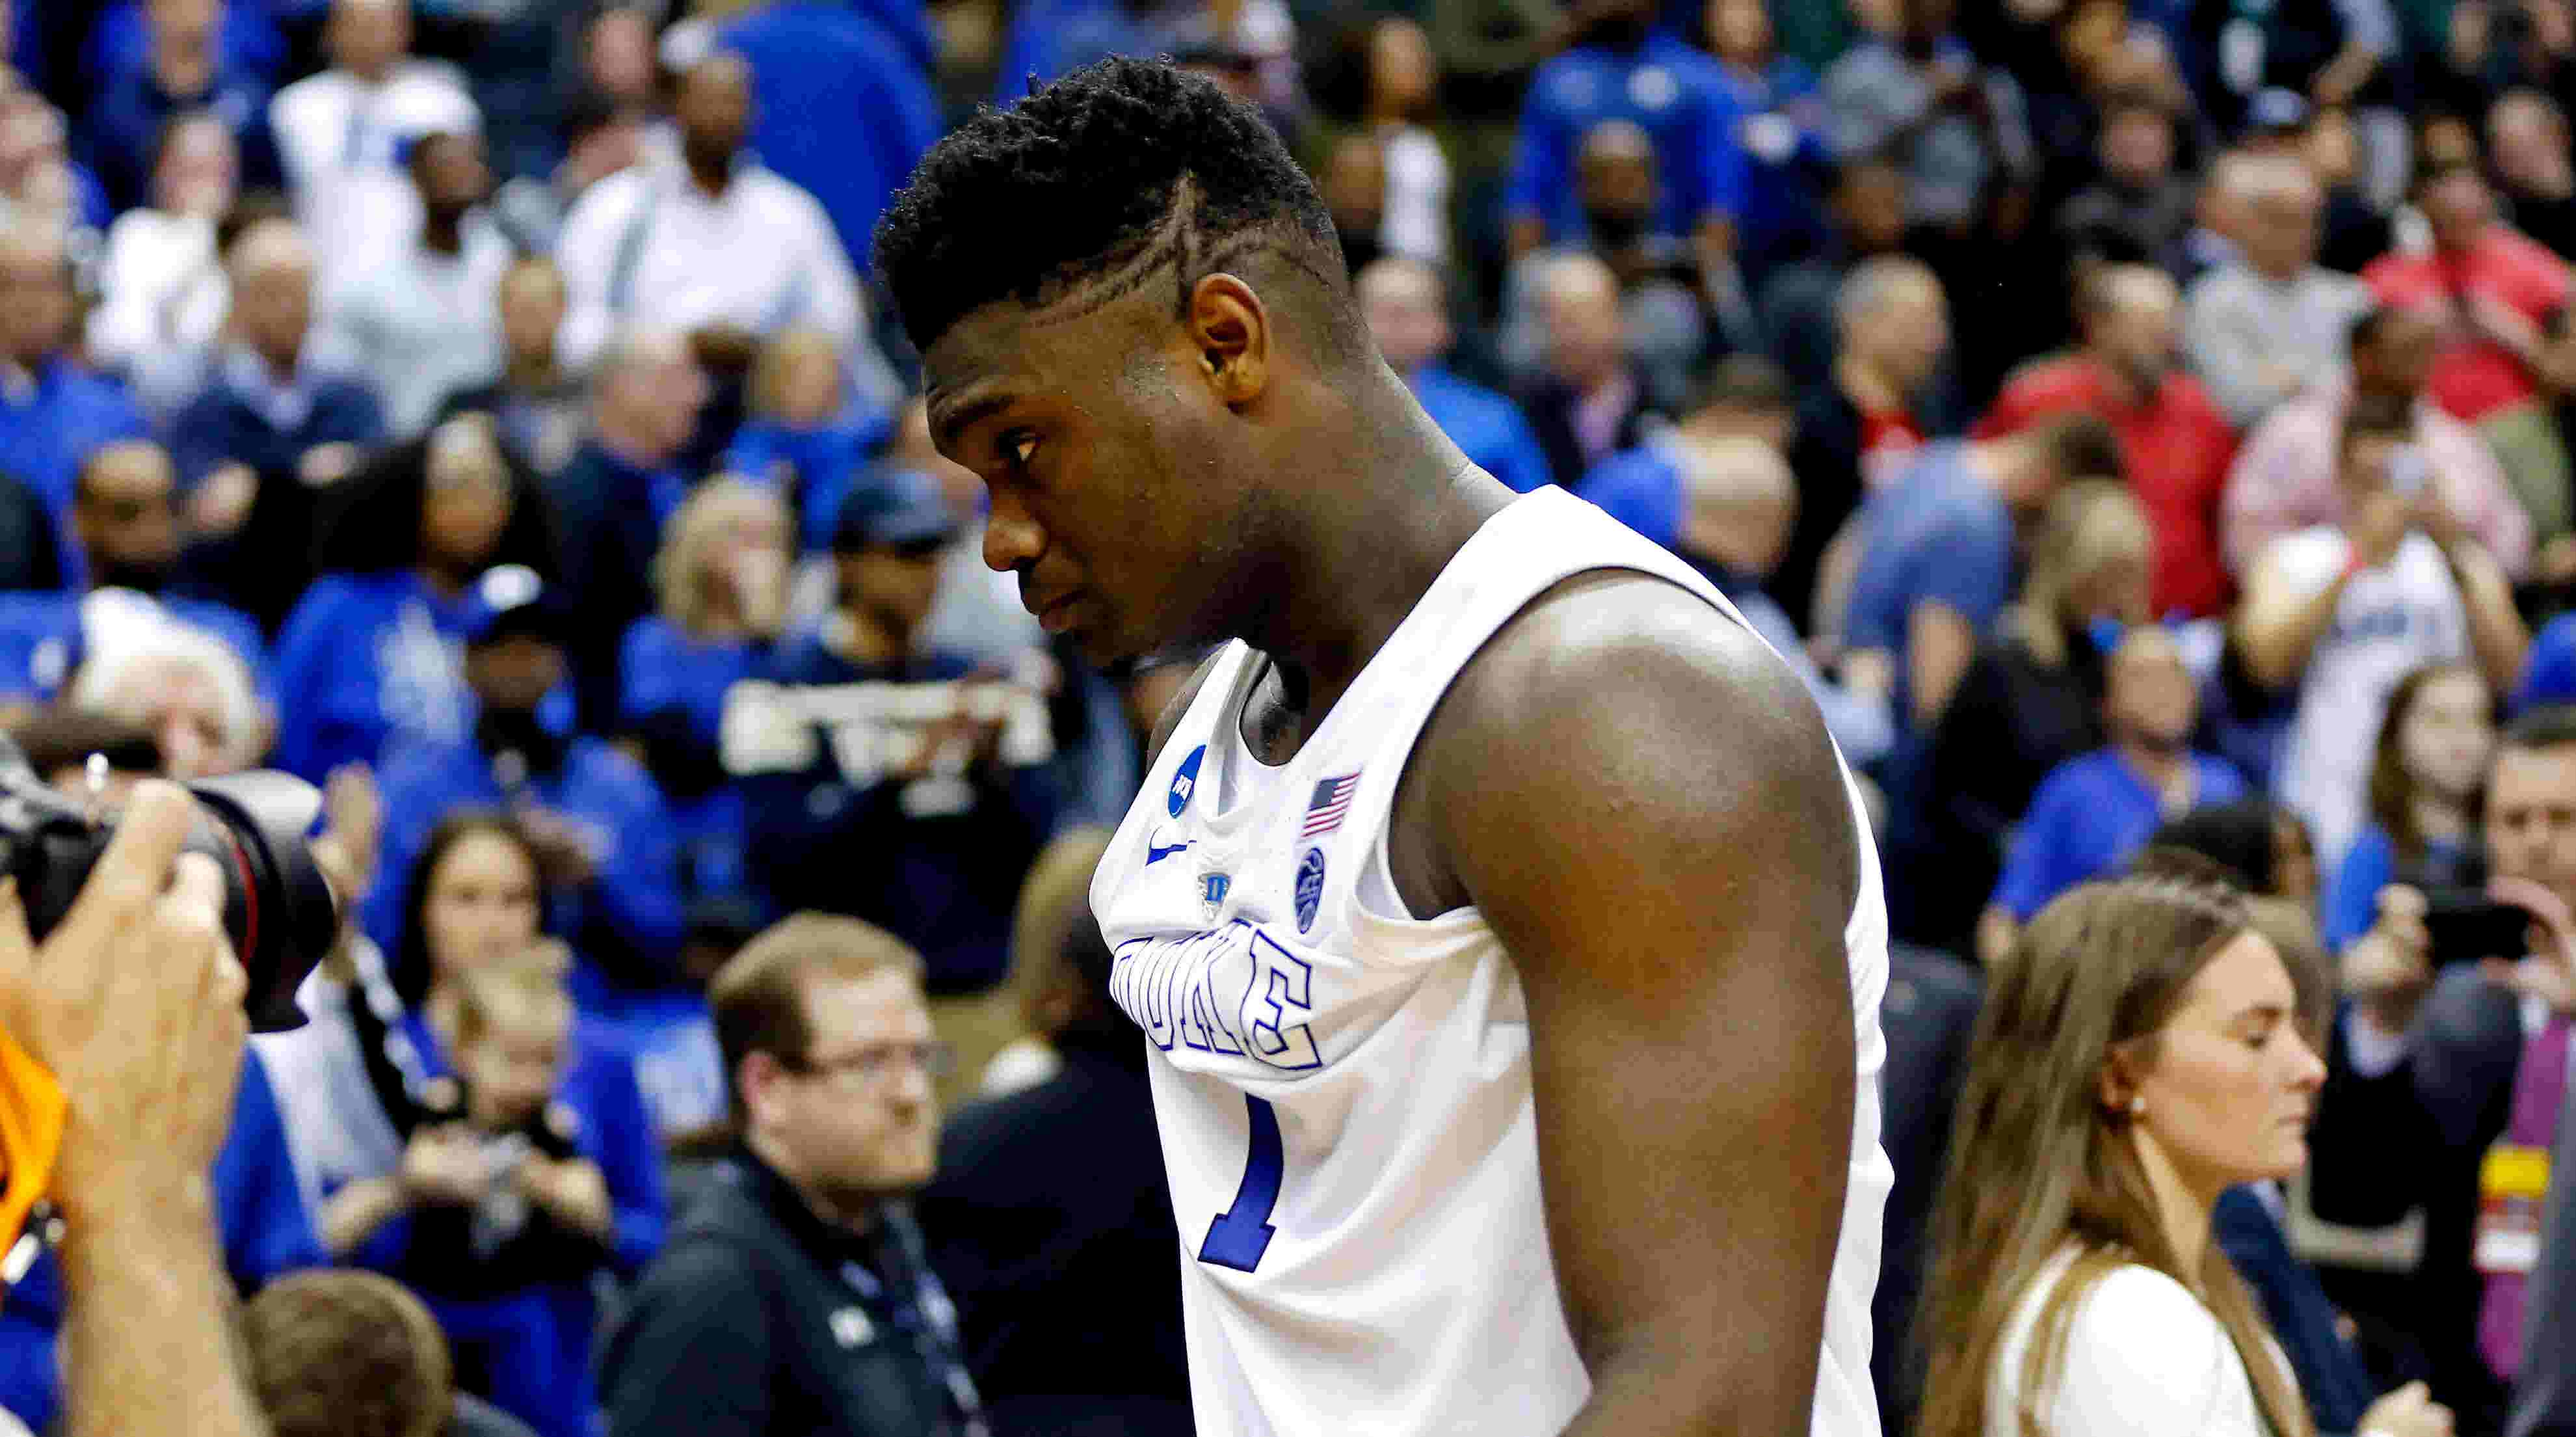 f00e9c99970 Zion Williamson enters NBA world with LeBron James-type expectations